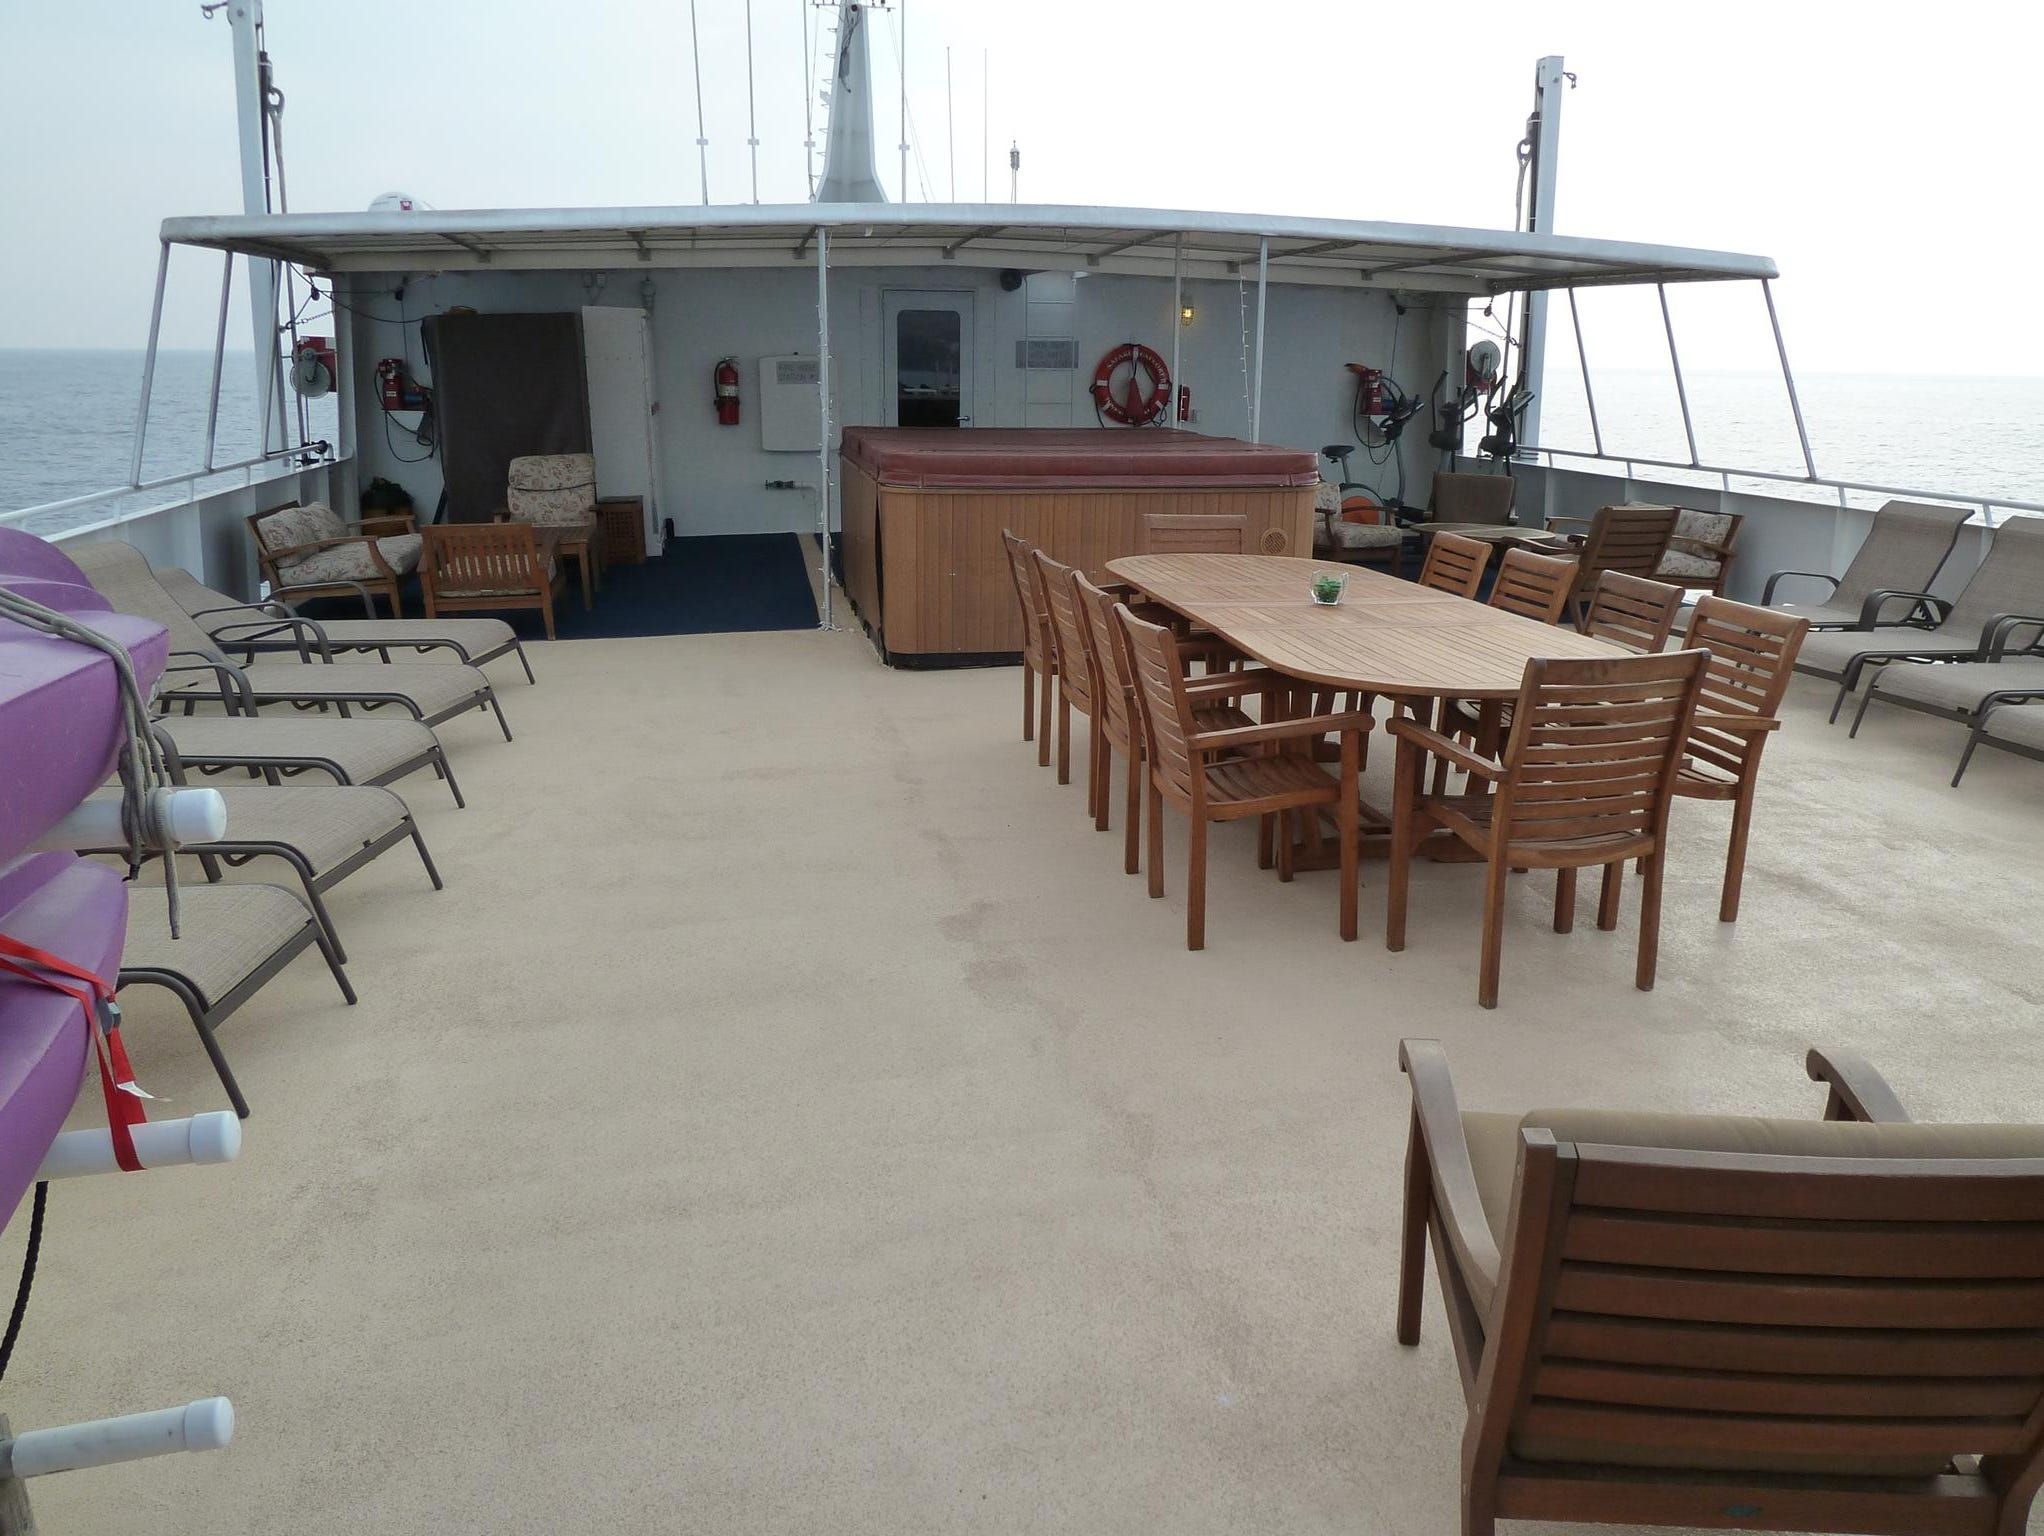 Bridge Deck also has sun loungers and a large dining table for on-deck barbeques.